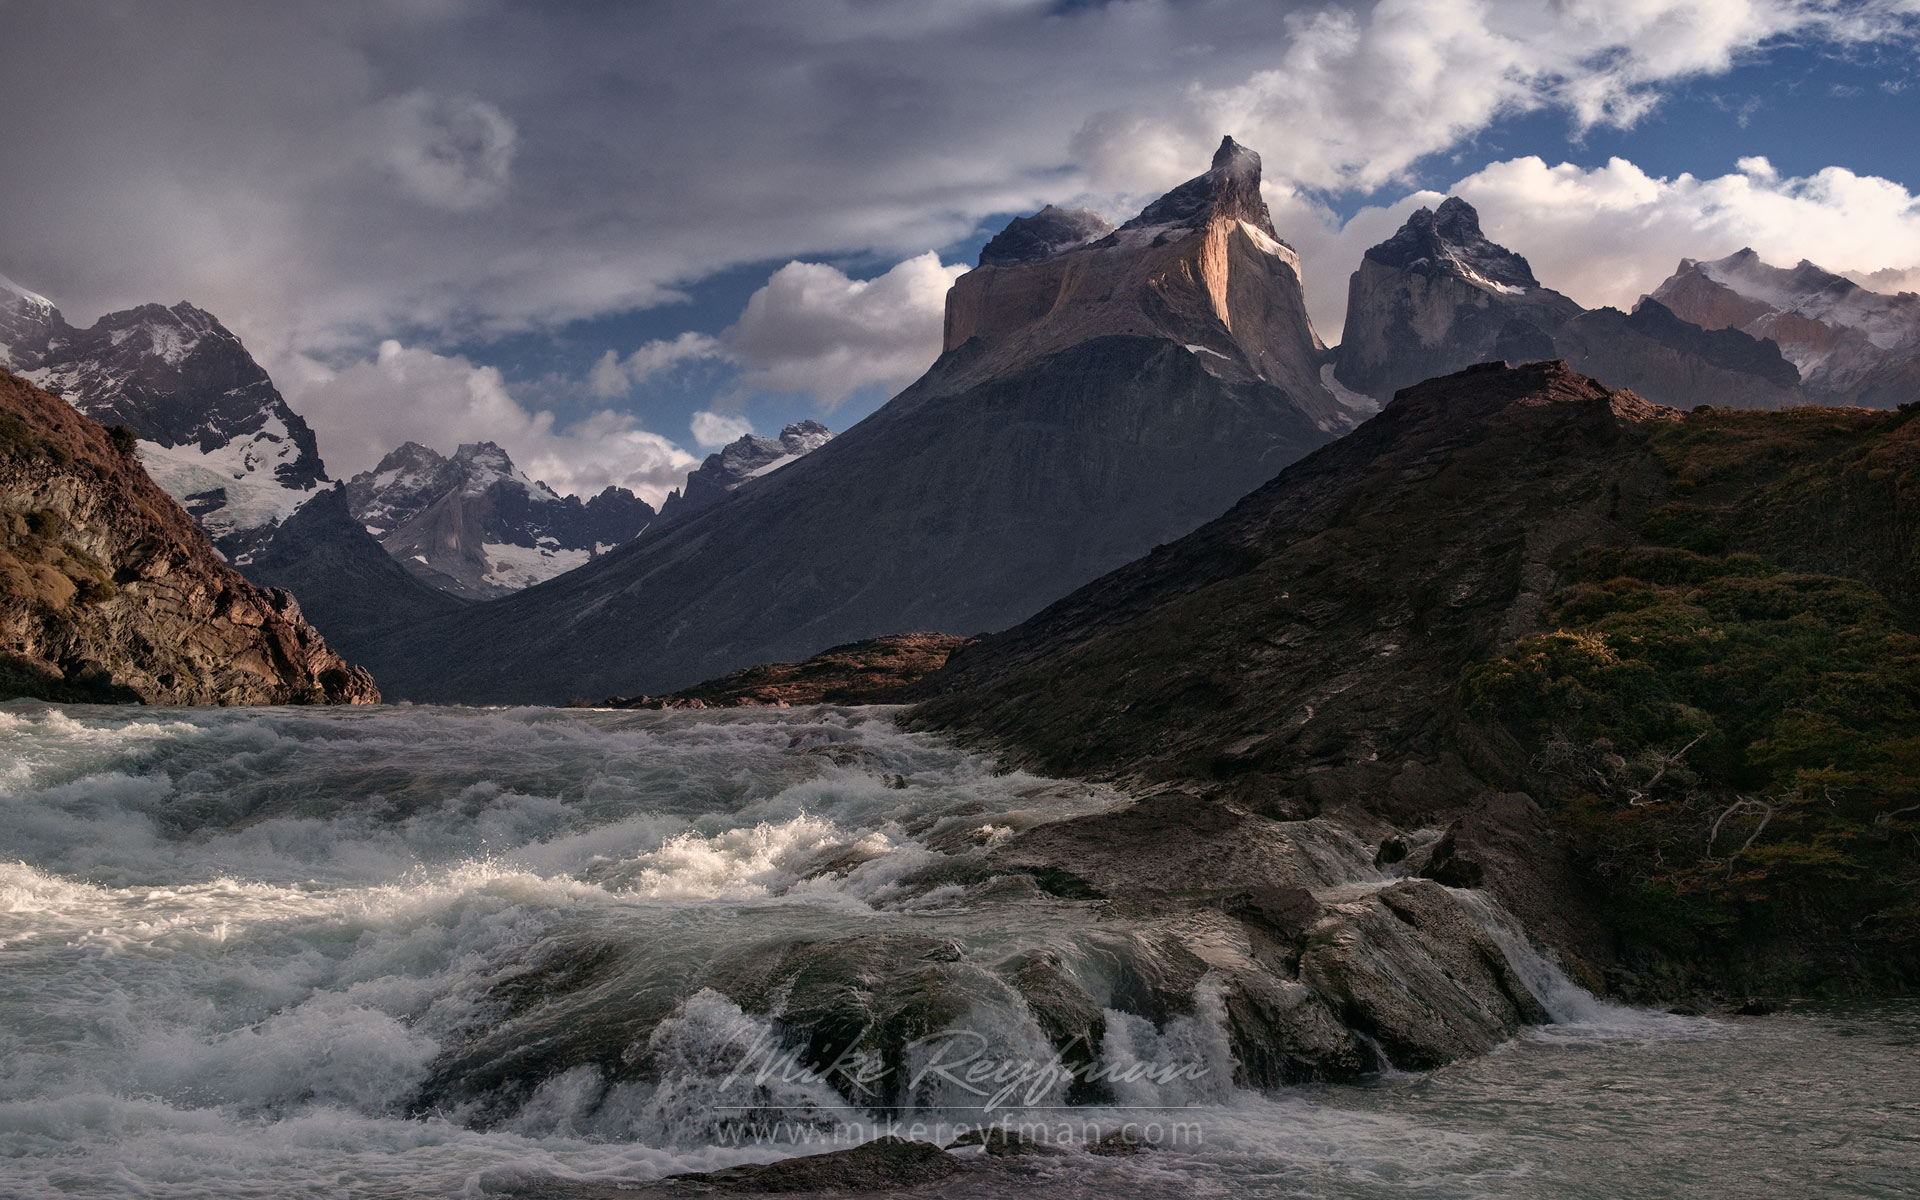 Rio Paine rapids and Cuernos del Paine. Torres del Paine National Park, Ultima Esperanza Province, Magallanes and Antartica Chilena Region XII, Patagonia, Chile. - Torres-Del-Paine-National-Park-Patagonia-Chile - Mike Reyfman Photography